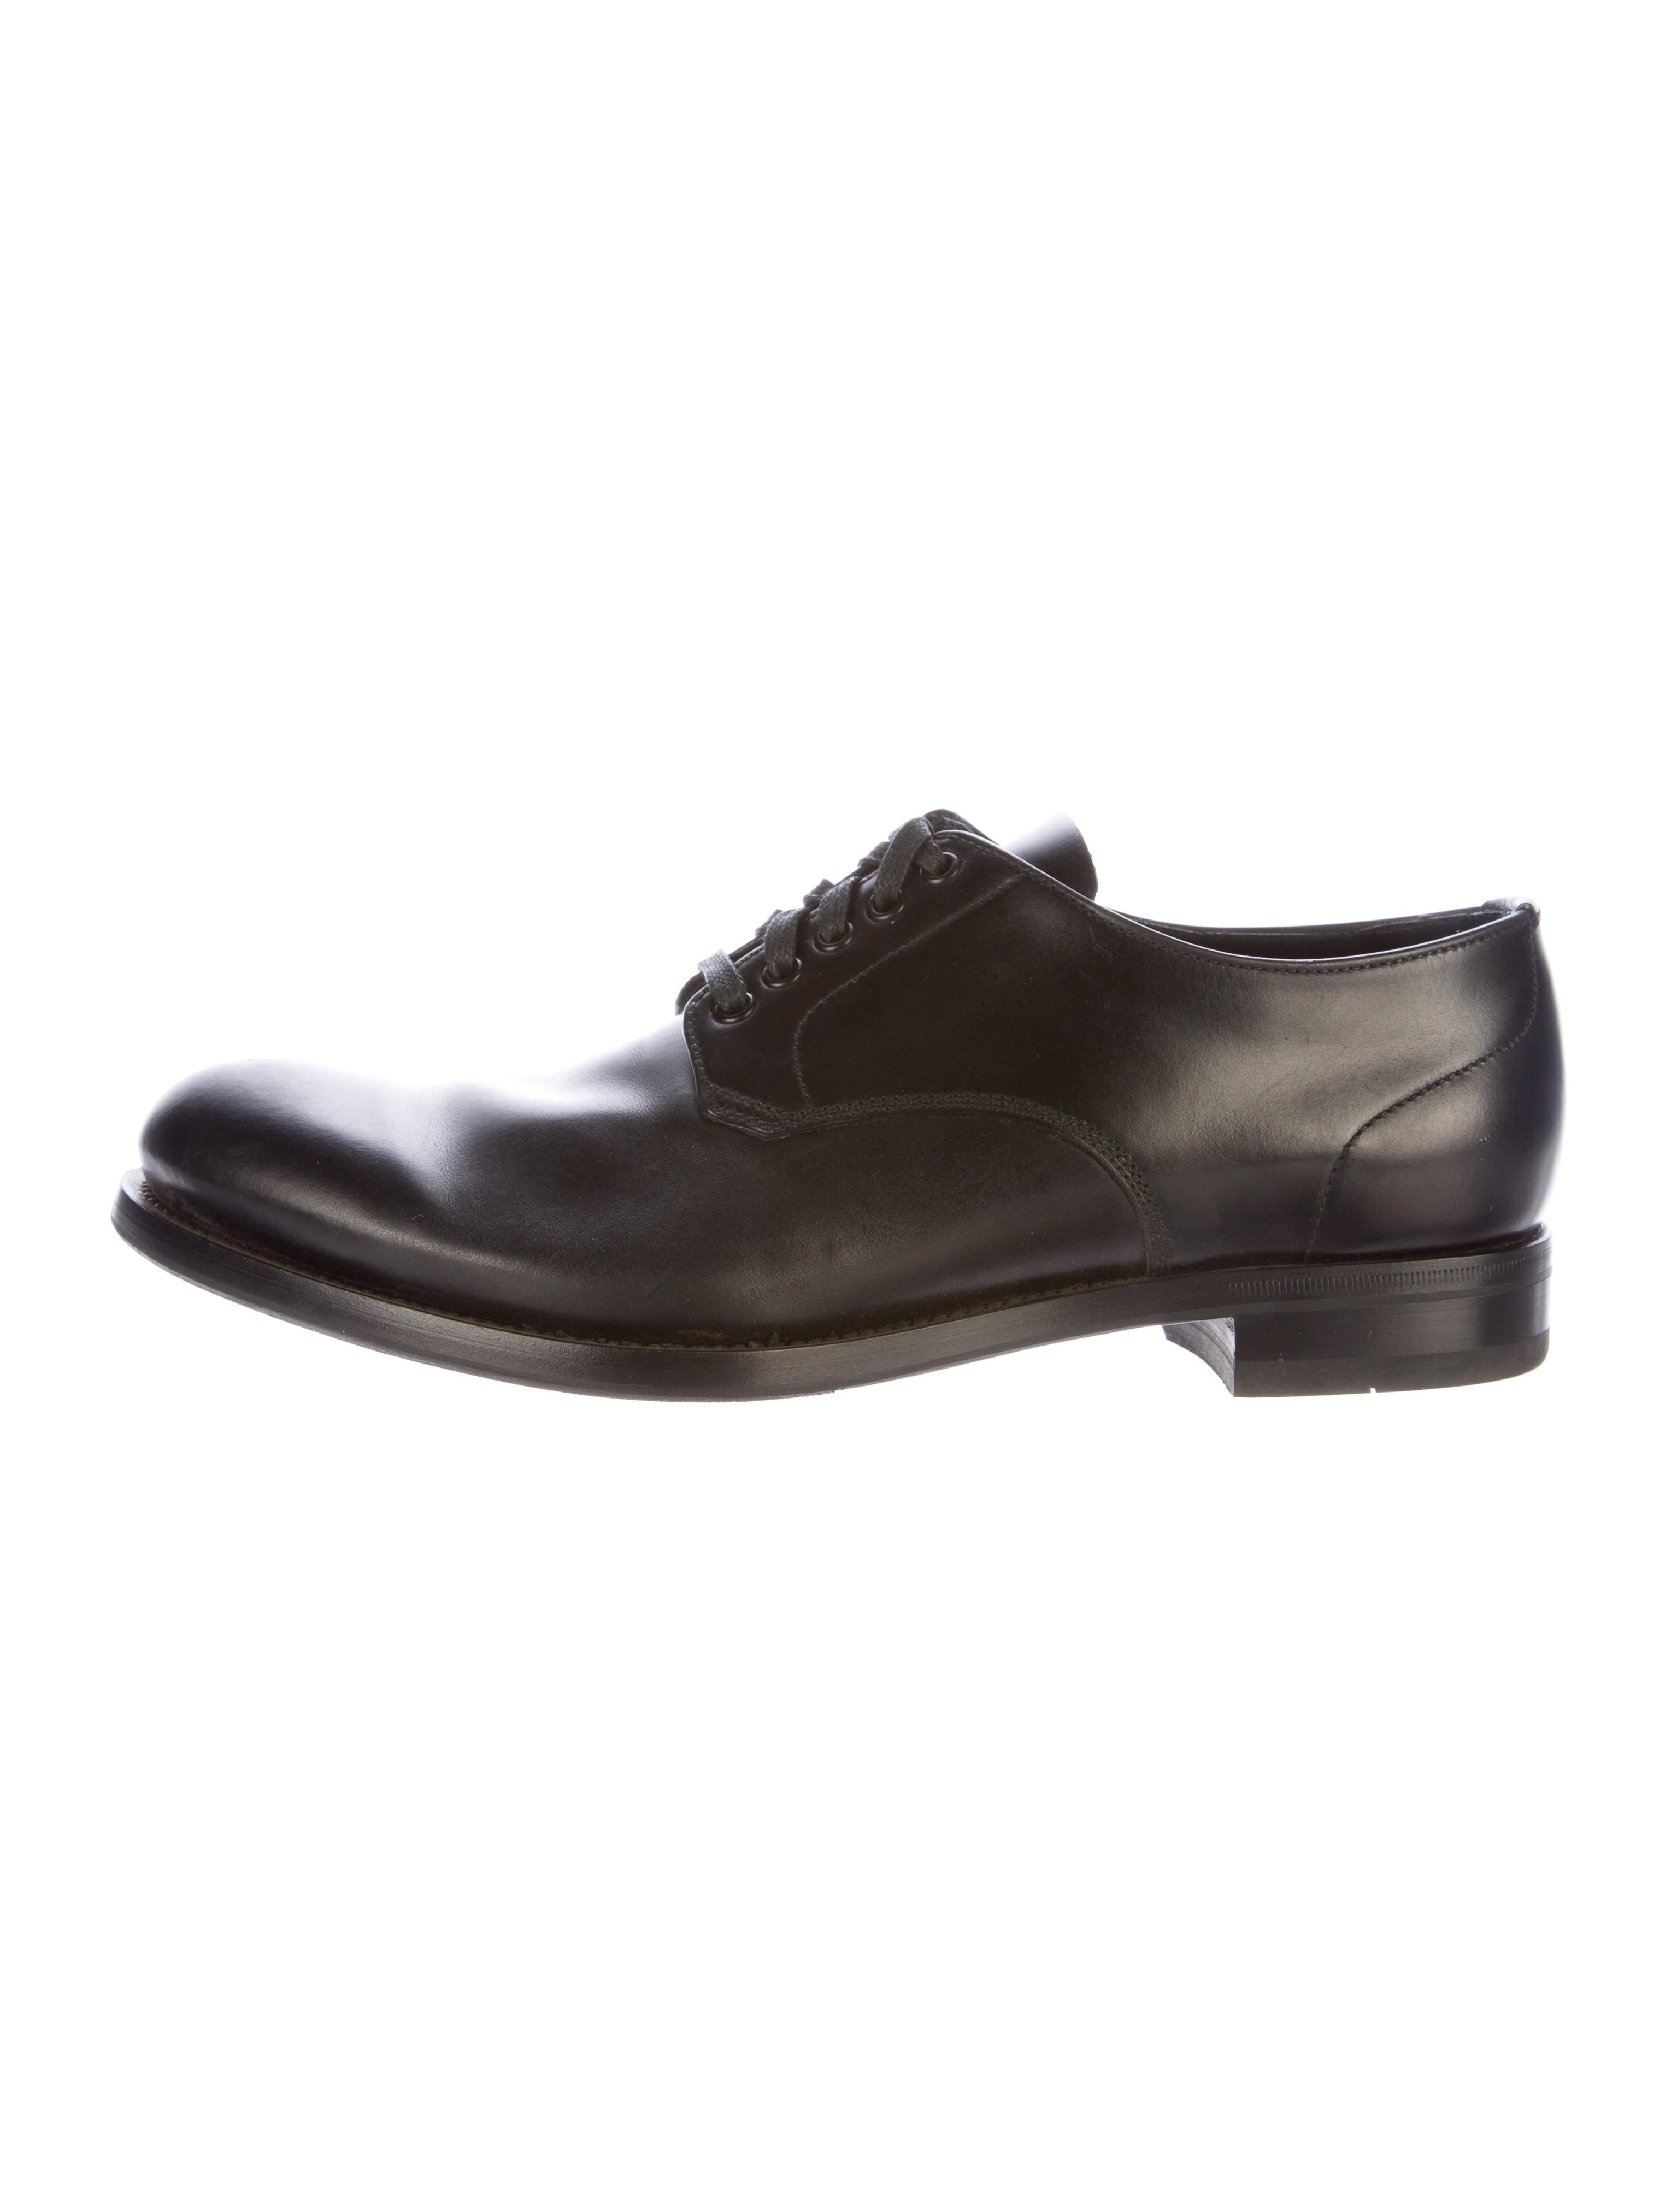 prada leather derby shoes shoes pra137970 the realreal